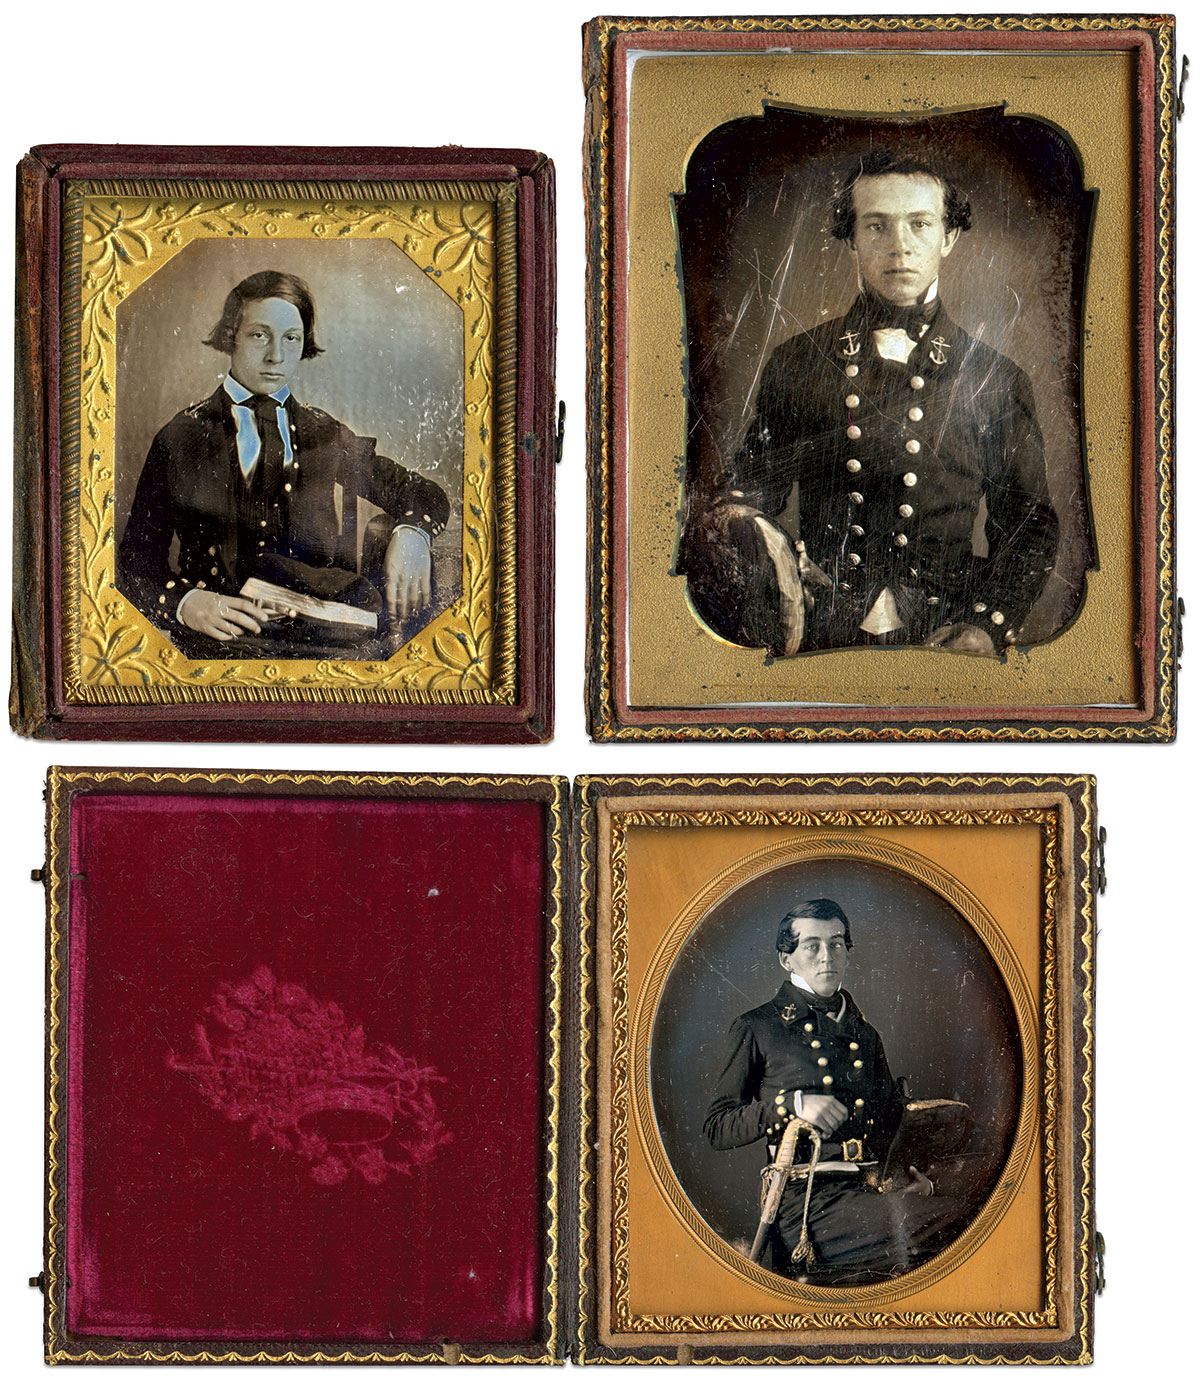 Daguerreotypes by anonymous photographers, clockwise from top left: sixth-plate, quarter-plate and sixth-plate.